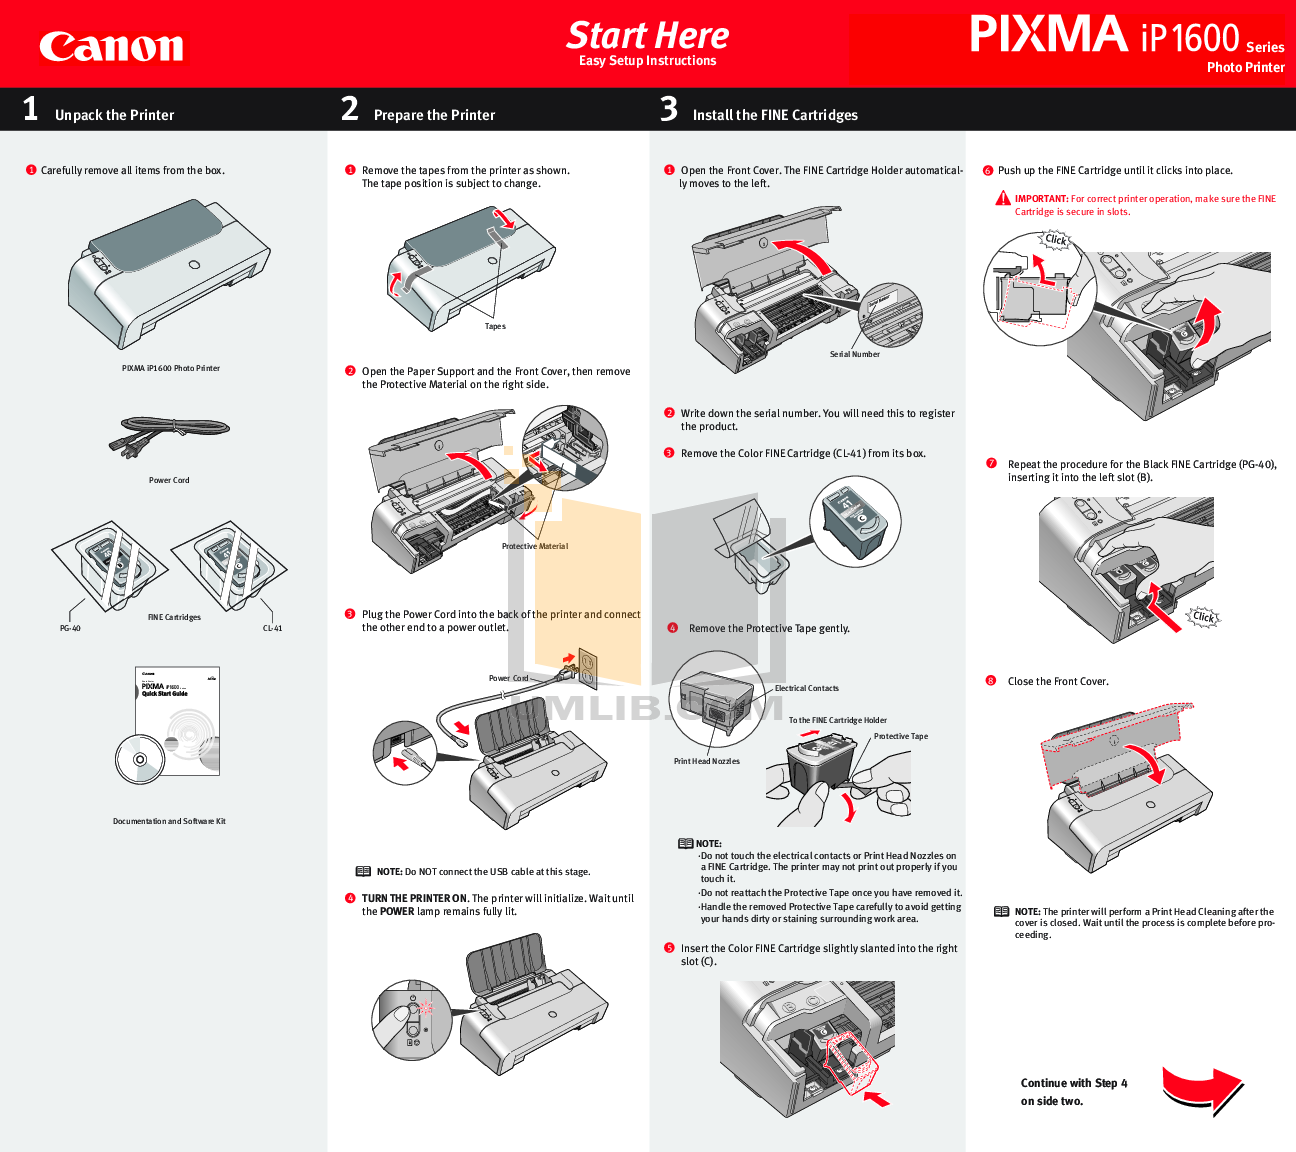 download free pdf for canon pixma ip1600 printer manual rh umlib com canon printer mg5220 user manual canon printer mg2120 user manual